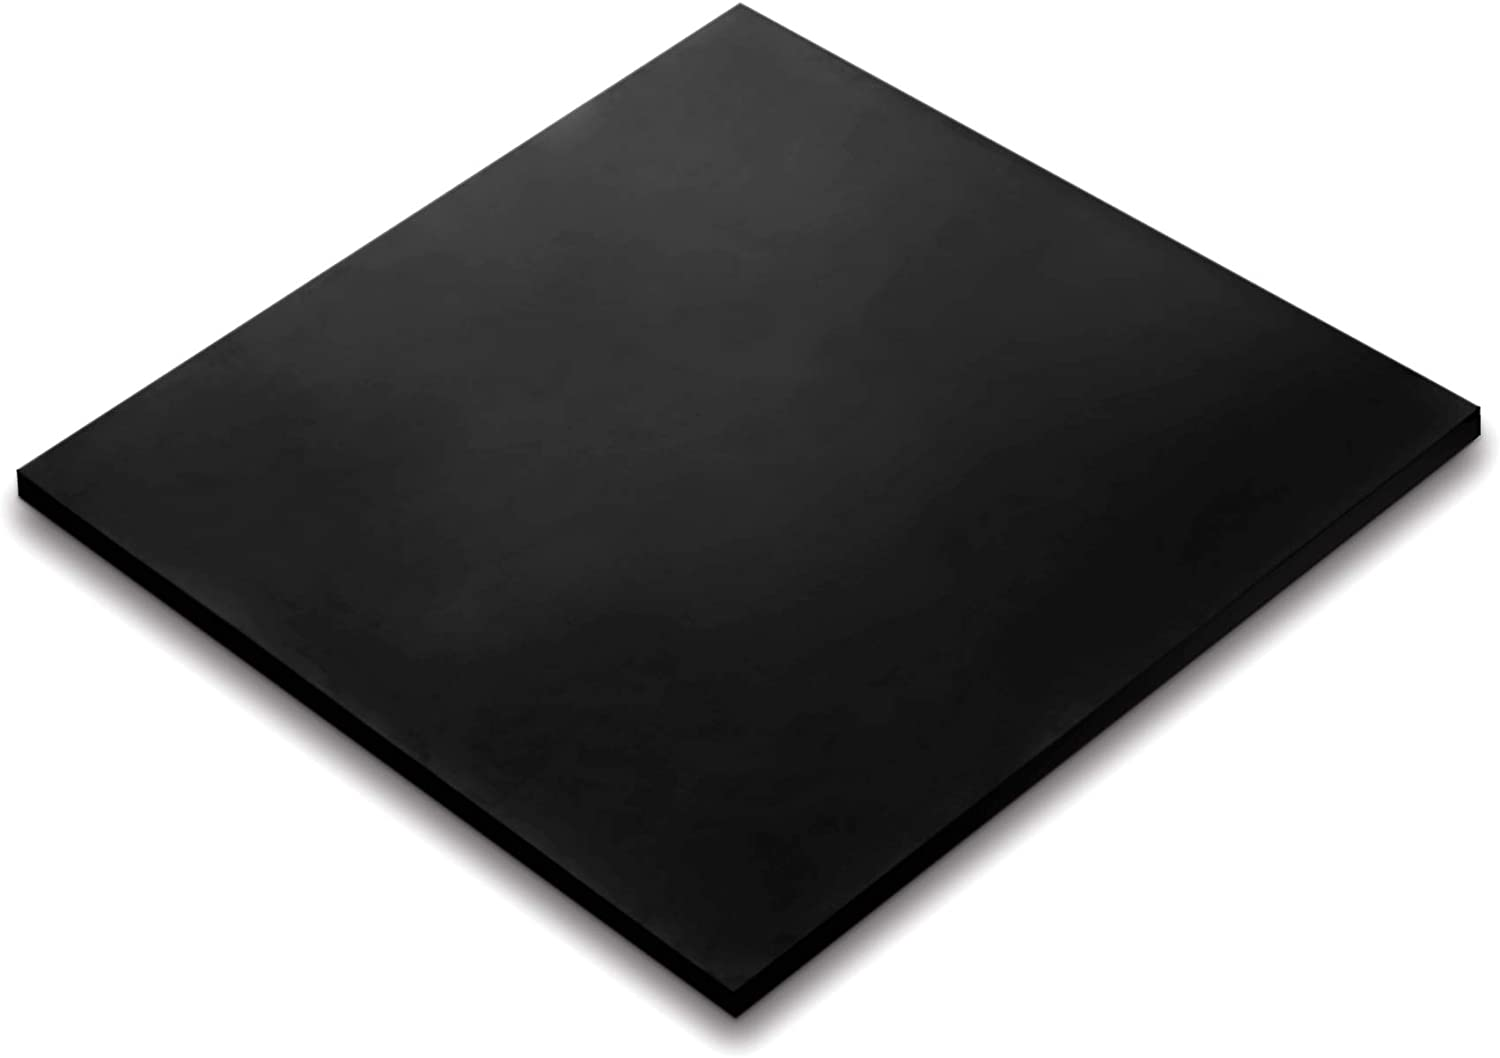 Rubber Sheet, Heavy Duty, High Grade 60A, Neoprene Black, 12x12-Inch by 1/4-inch Thick (+/- 5%) for Plumbing, Gaskets DIY Material, Supports, Leveling, Sealing, Bumpers, Protection, Abrasion, Flooring